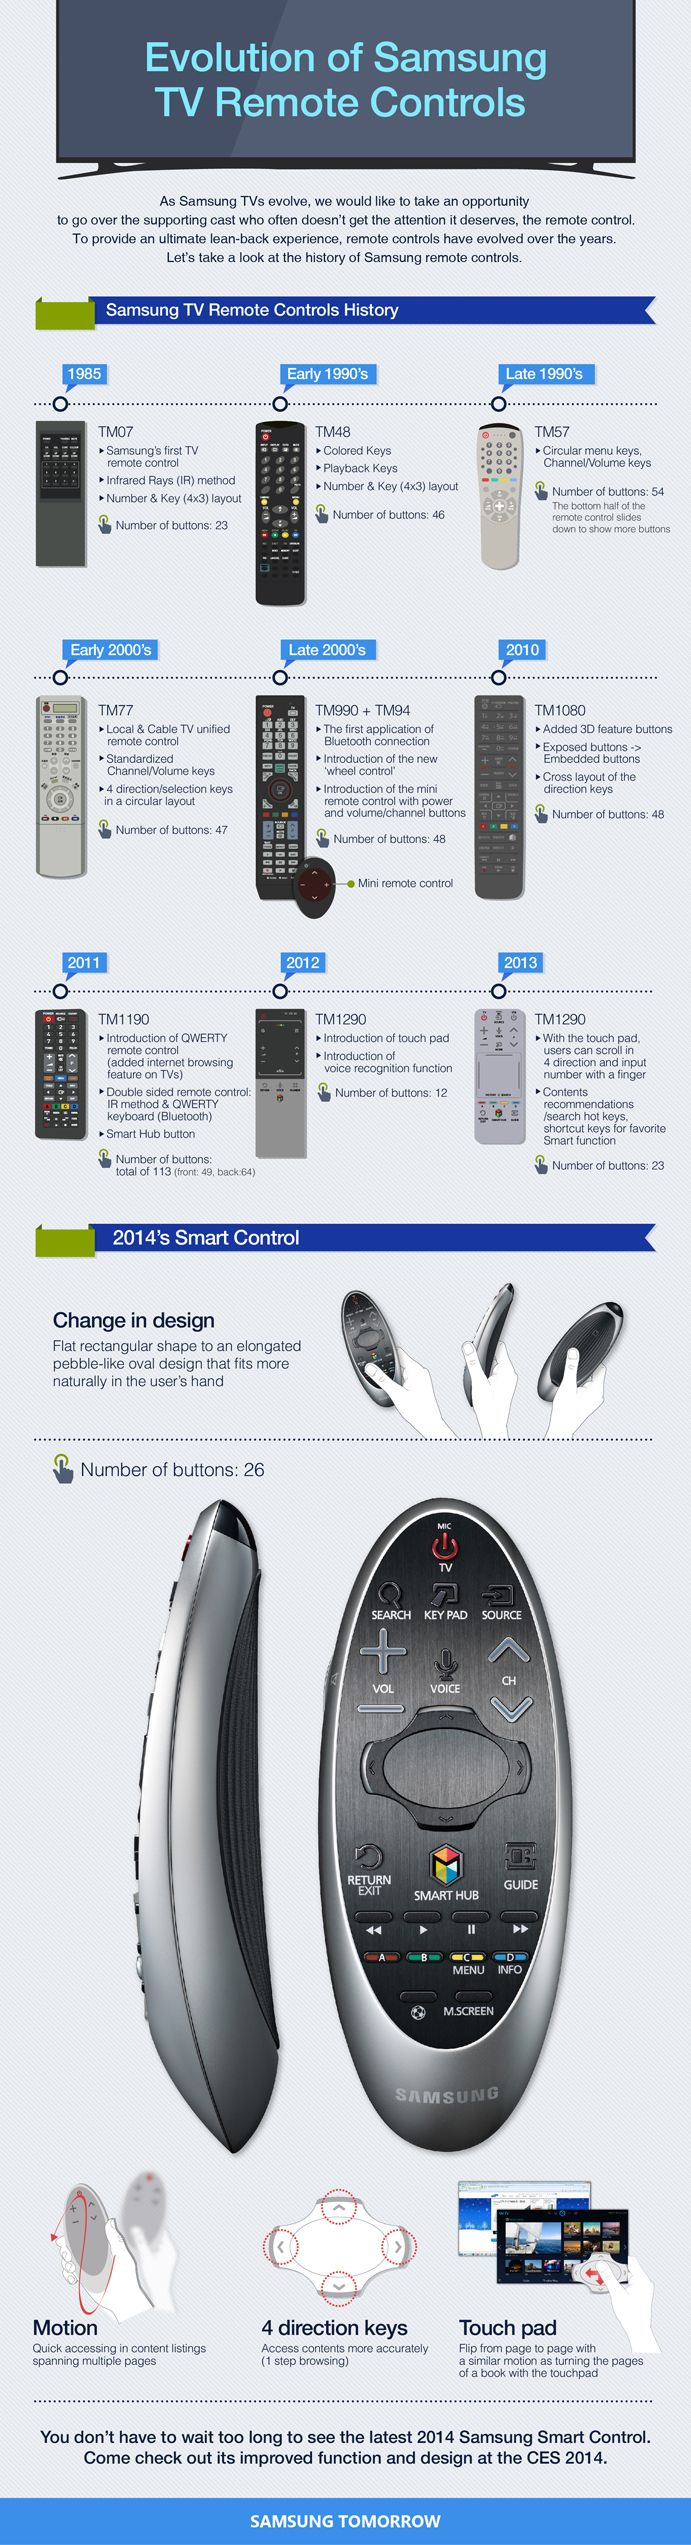 Evolution of Samsung TV Remote Controls